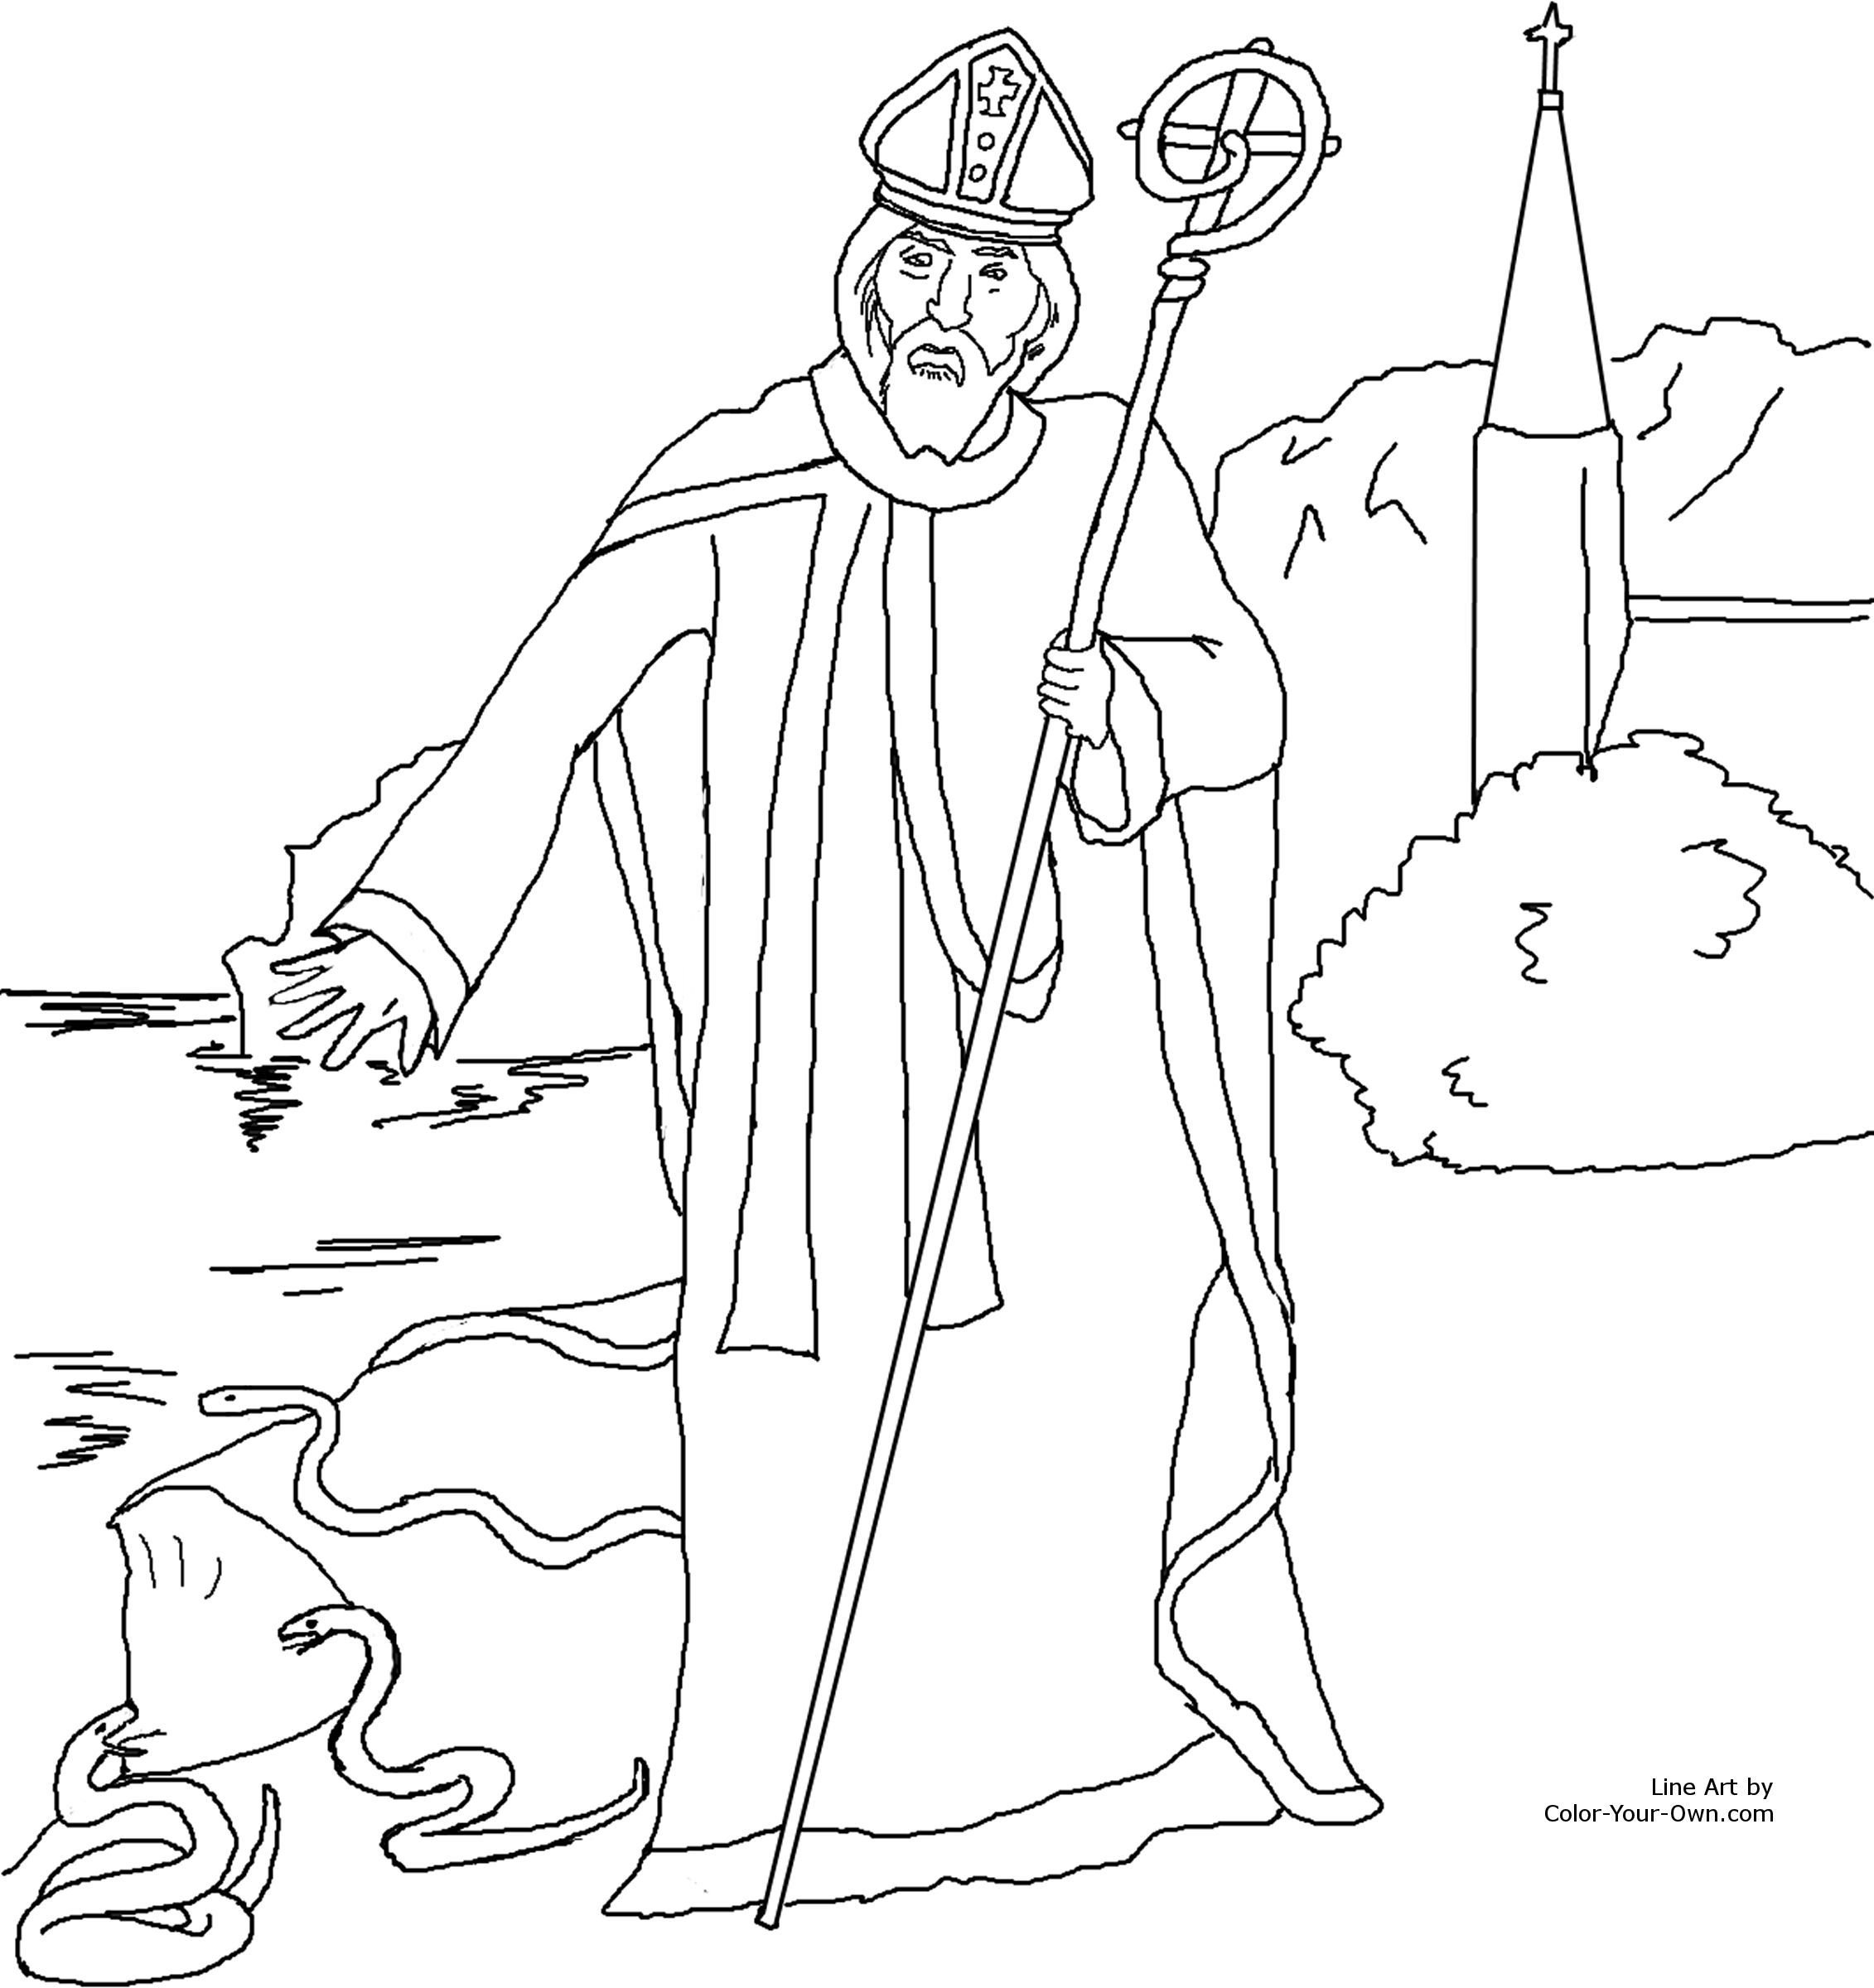 st patrick religious coloring page saint patrick driving out the snakes of ireland coloring - St Patrick Coloring Page Catholic